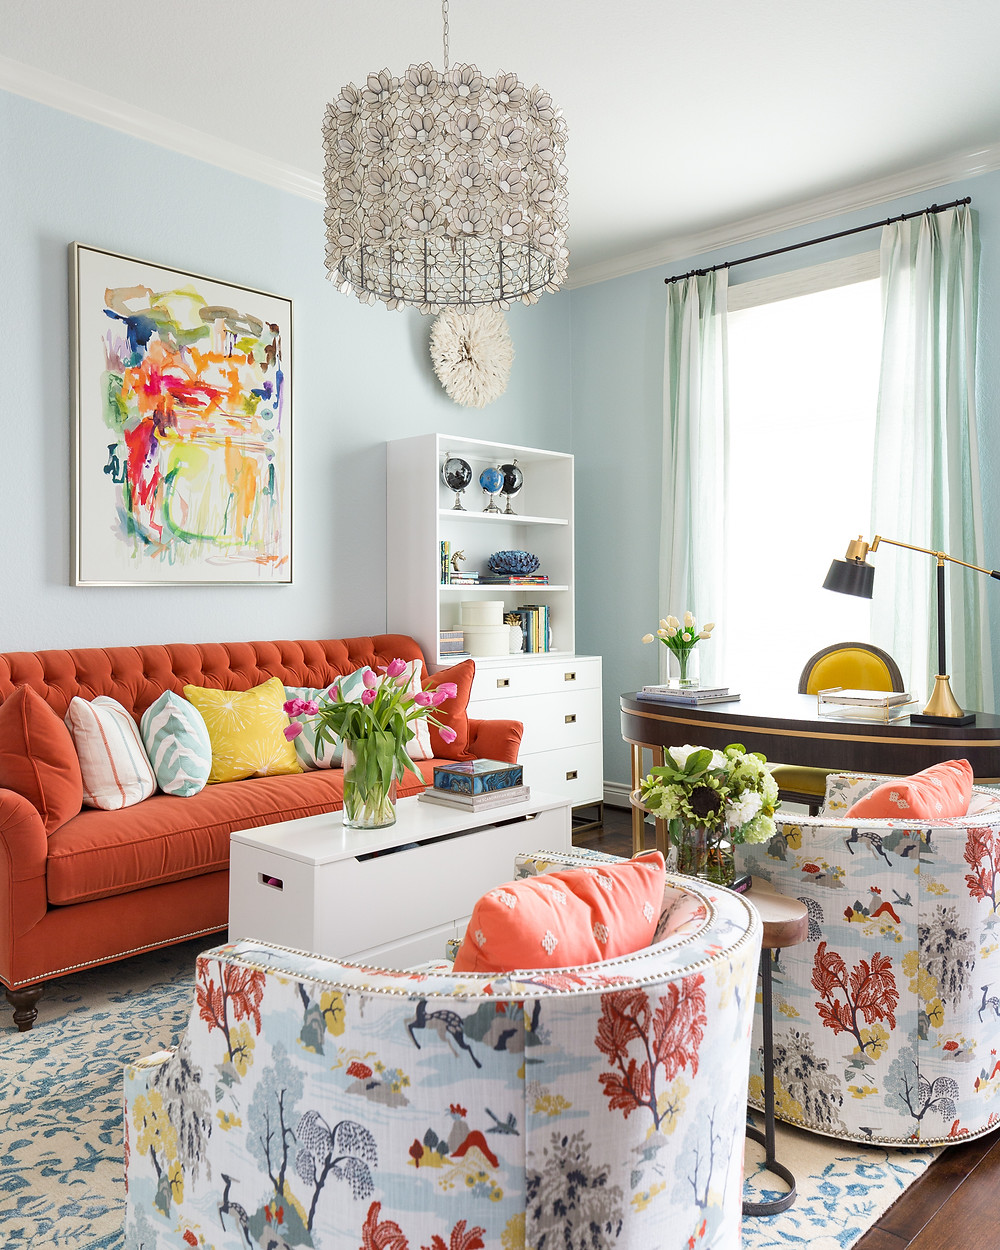 Homeschool Room With Coral Sofa